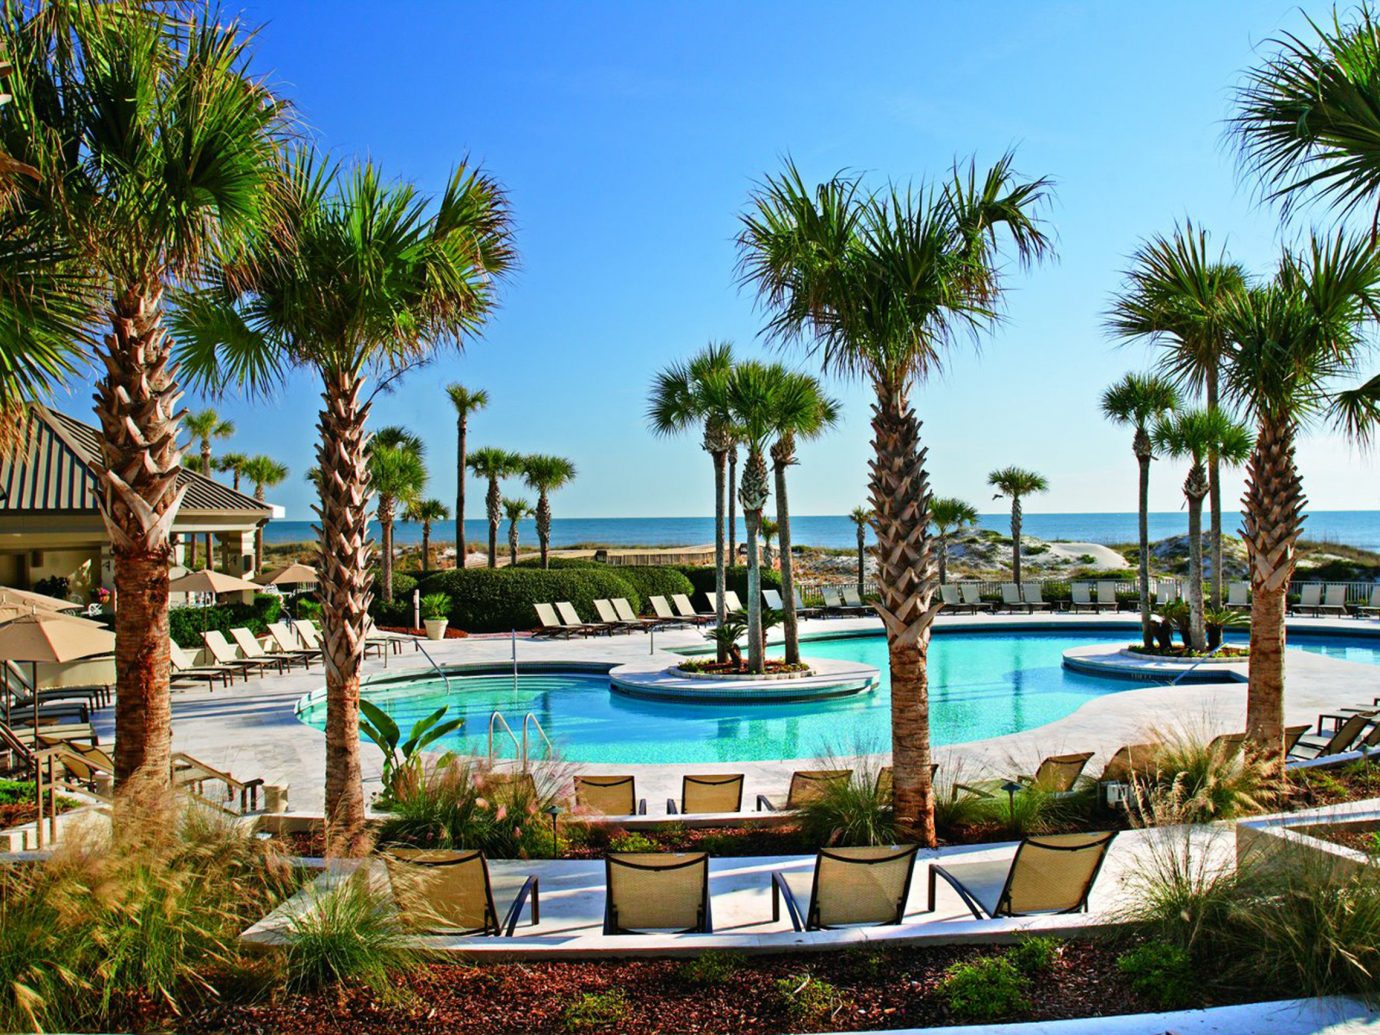 Hotels tree outdoor palm sky plant Pool swimming pool Resort property leisure estate vacation arecales resort town real estate Lagoon Villa lawn lined area furniture Garden shade colorful